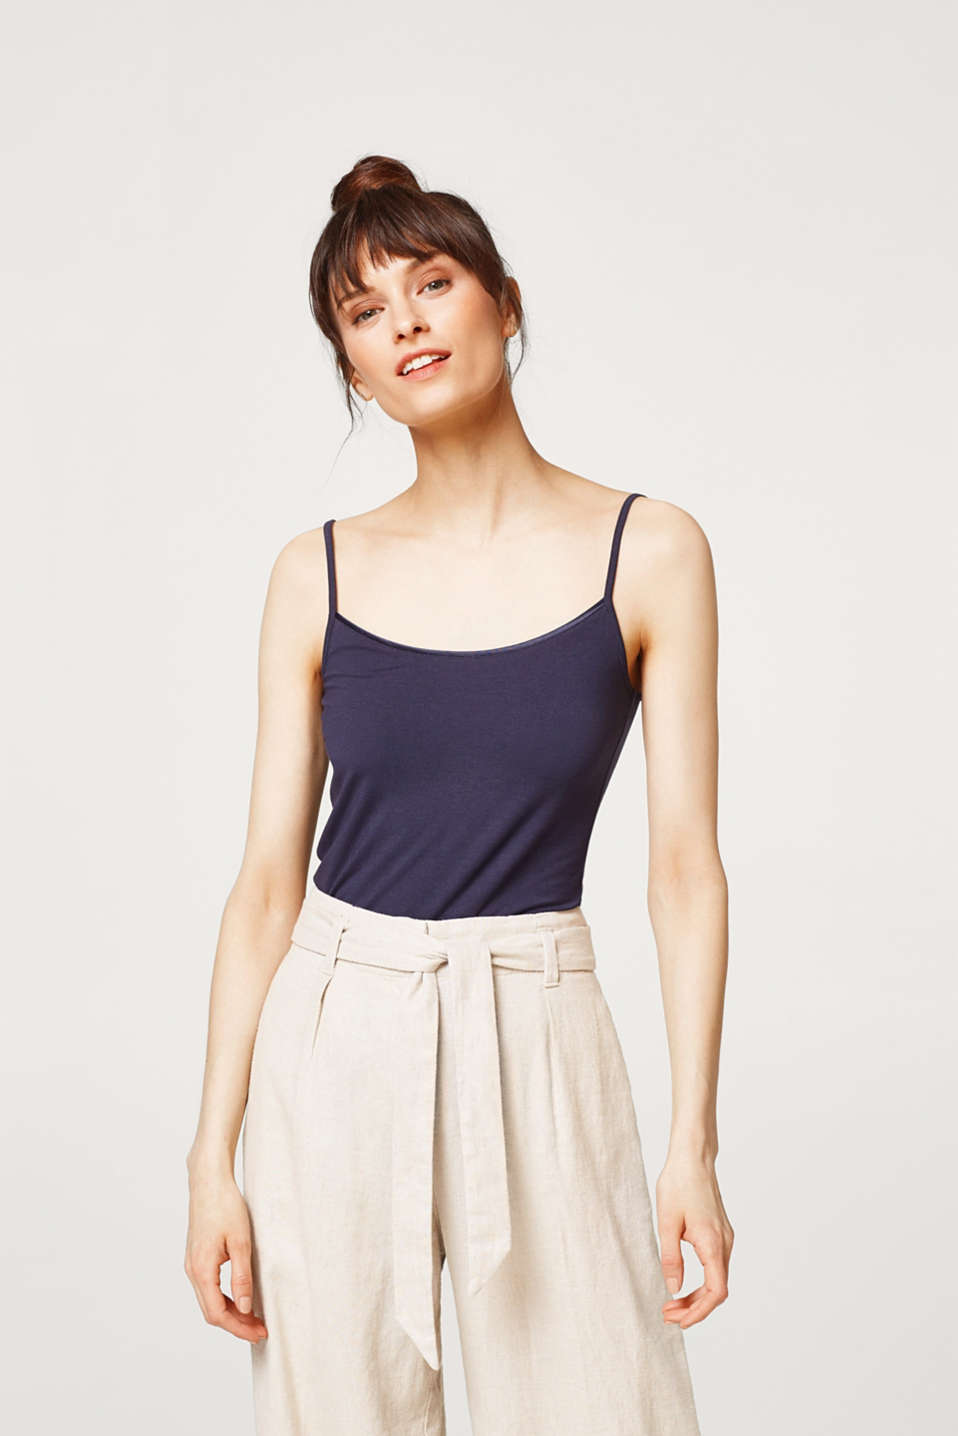 Esprit - basic stretch jersey spaghetti strap top